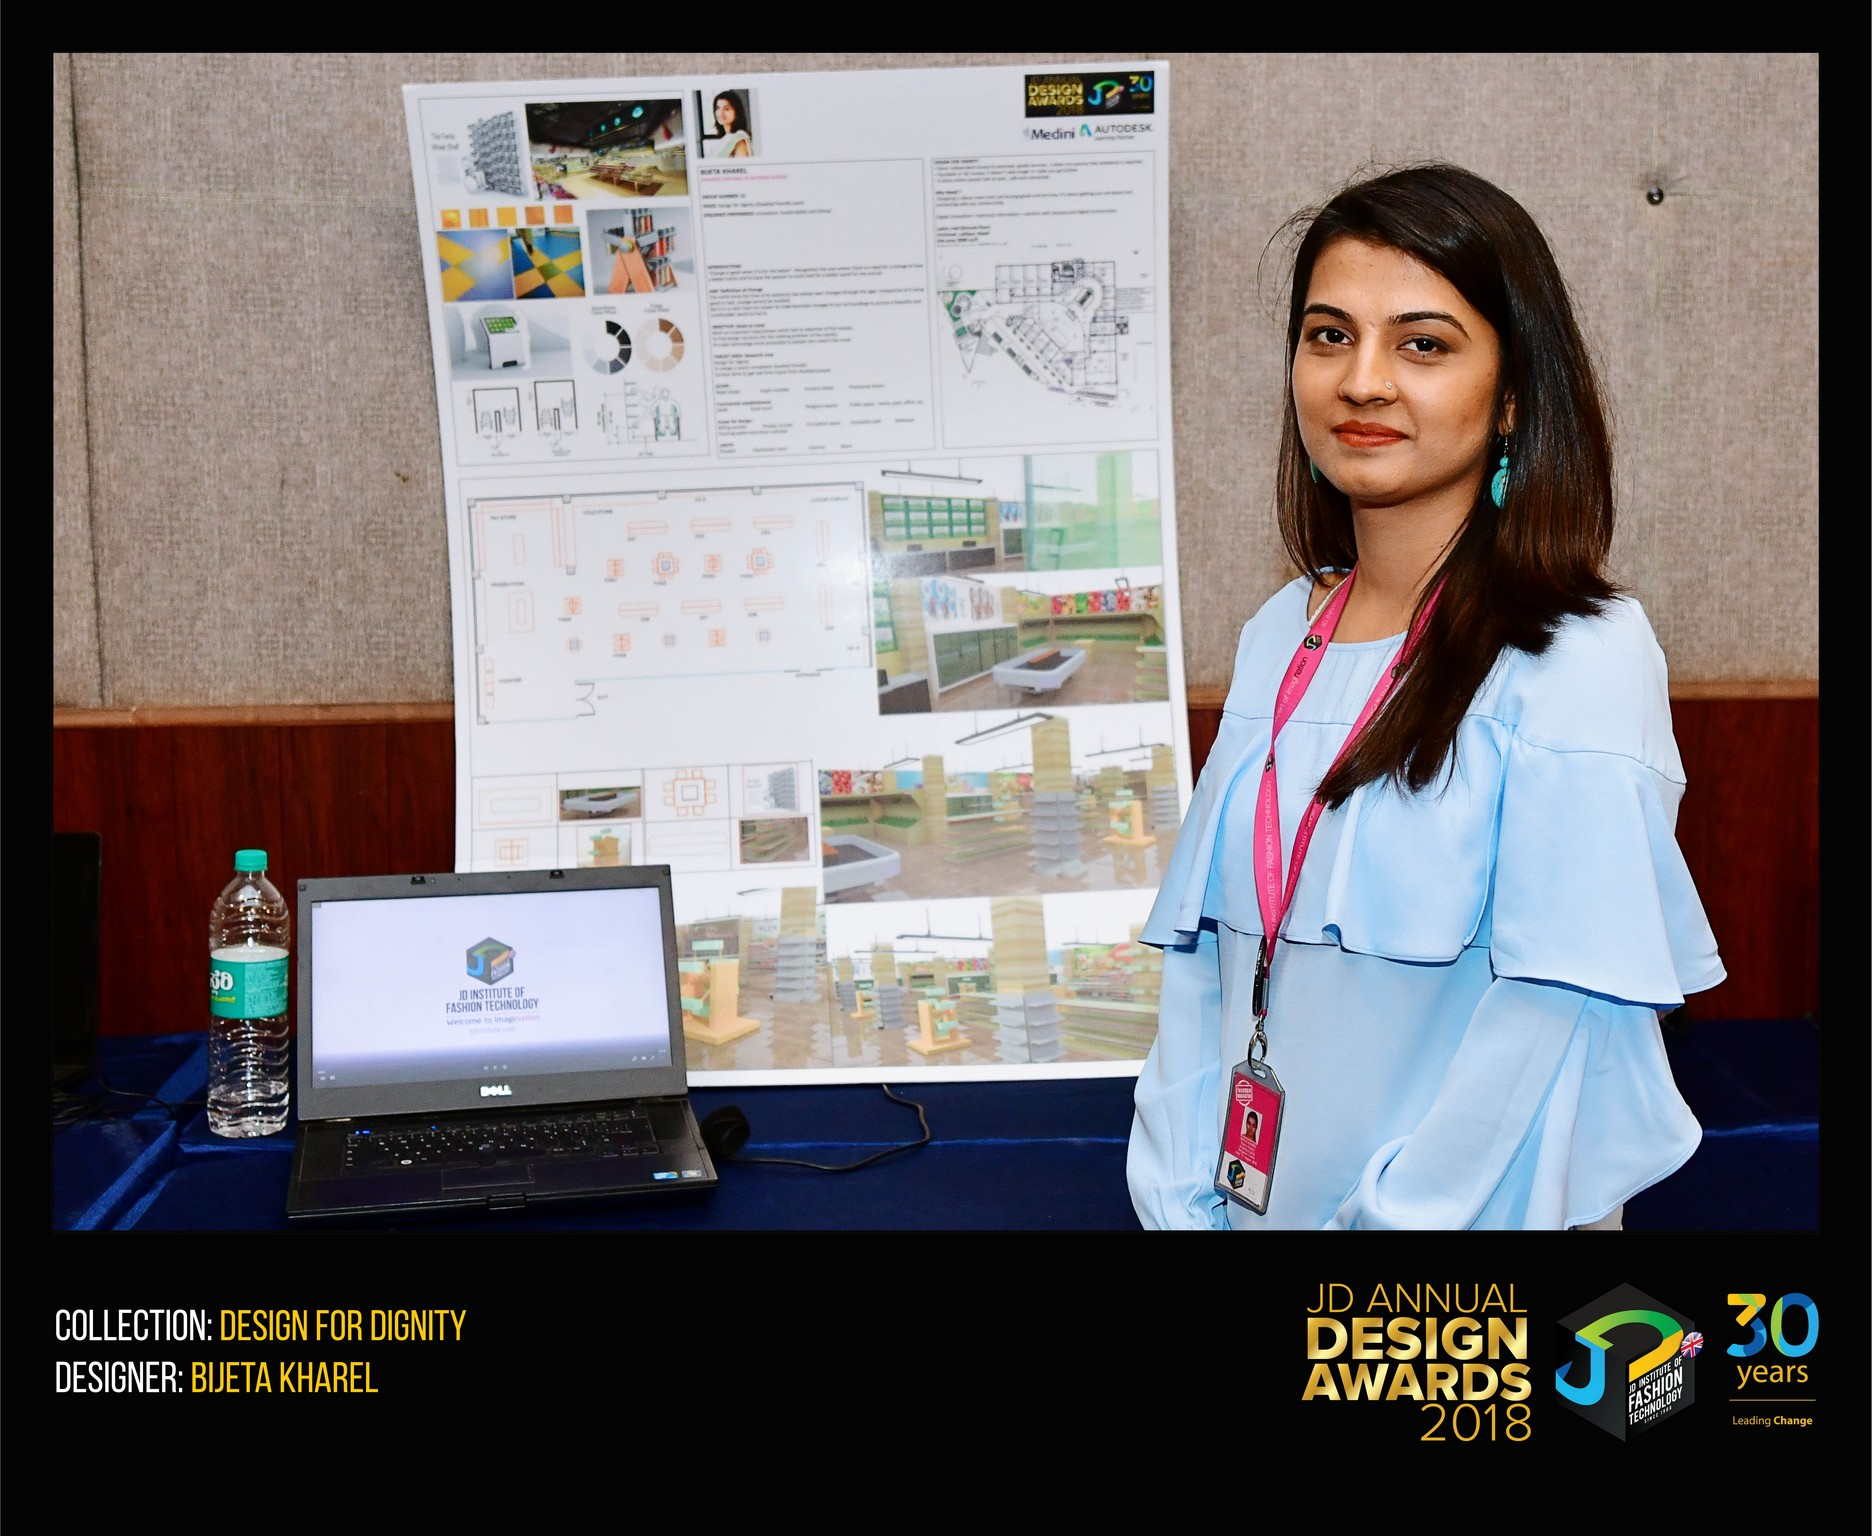 design for dignity - design for dignity - Design for Dignity- Change – JD Annual Design Awards 2018